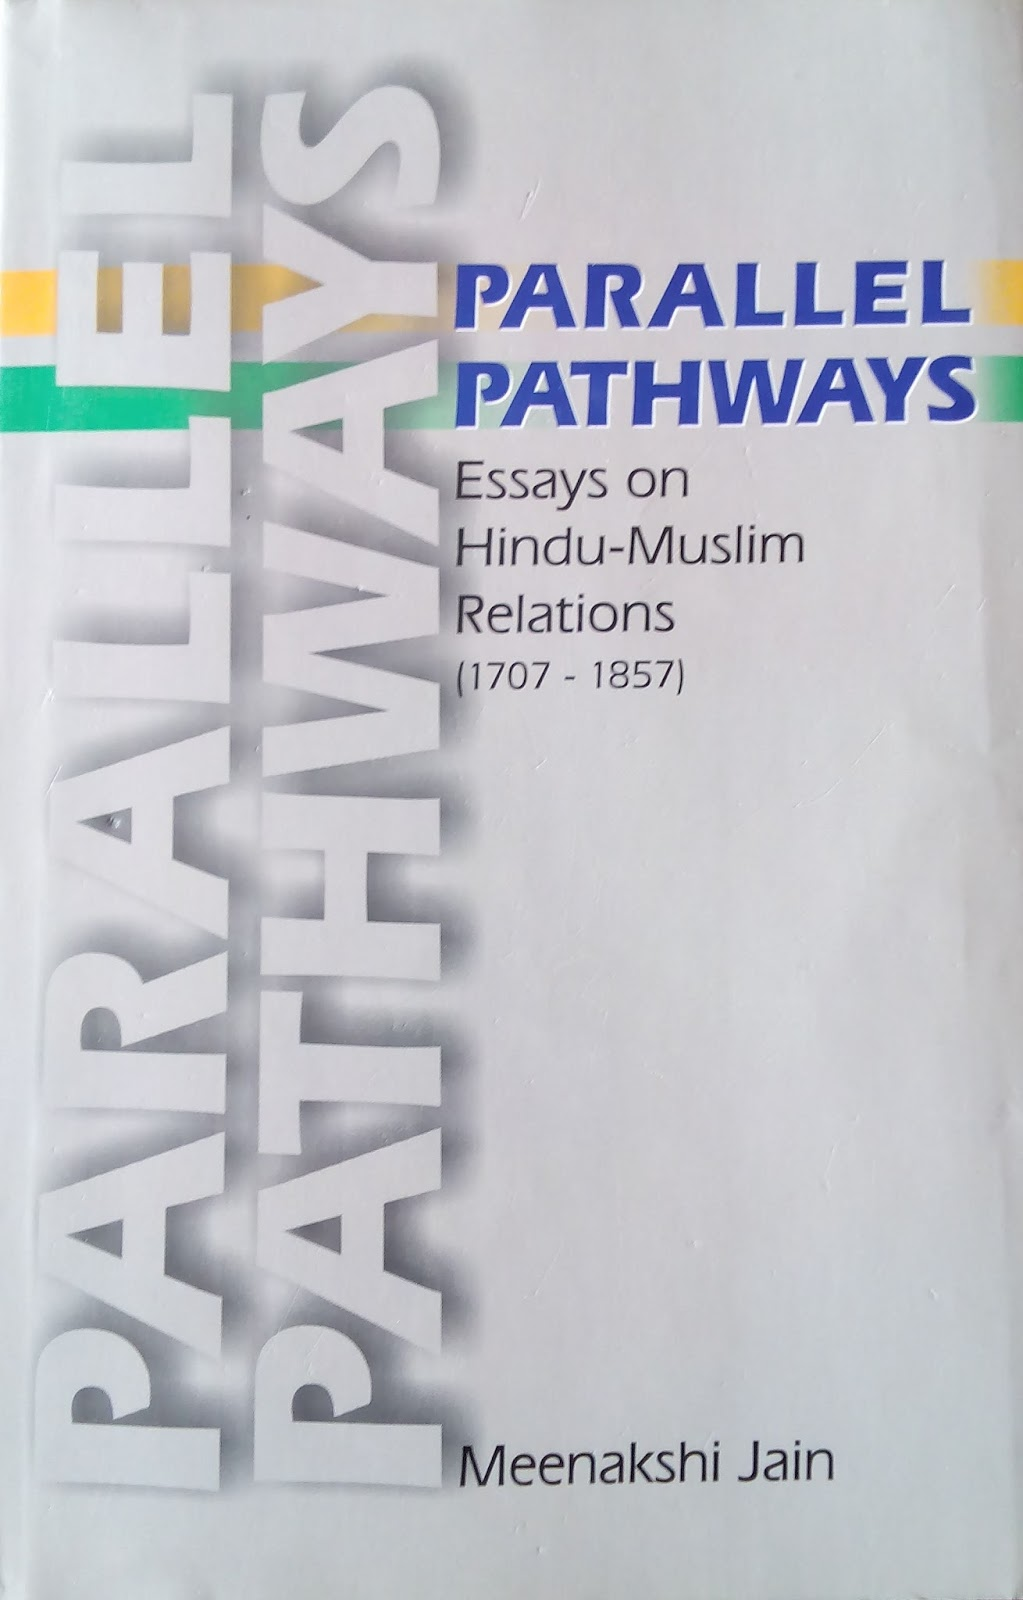 parallel pathways essays on hindu-muslim relations Adolescent development and pathways to problem behavior 23 introduction: domains of adolescent maturation and development our discussion of patterns of adolescent.